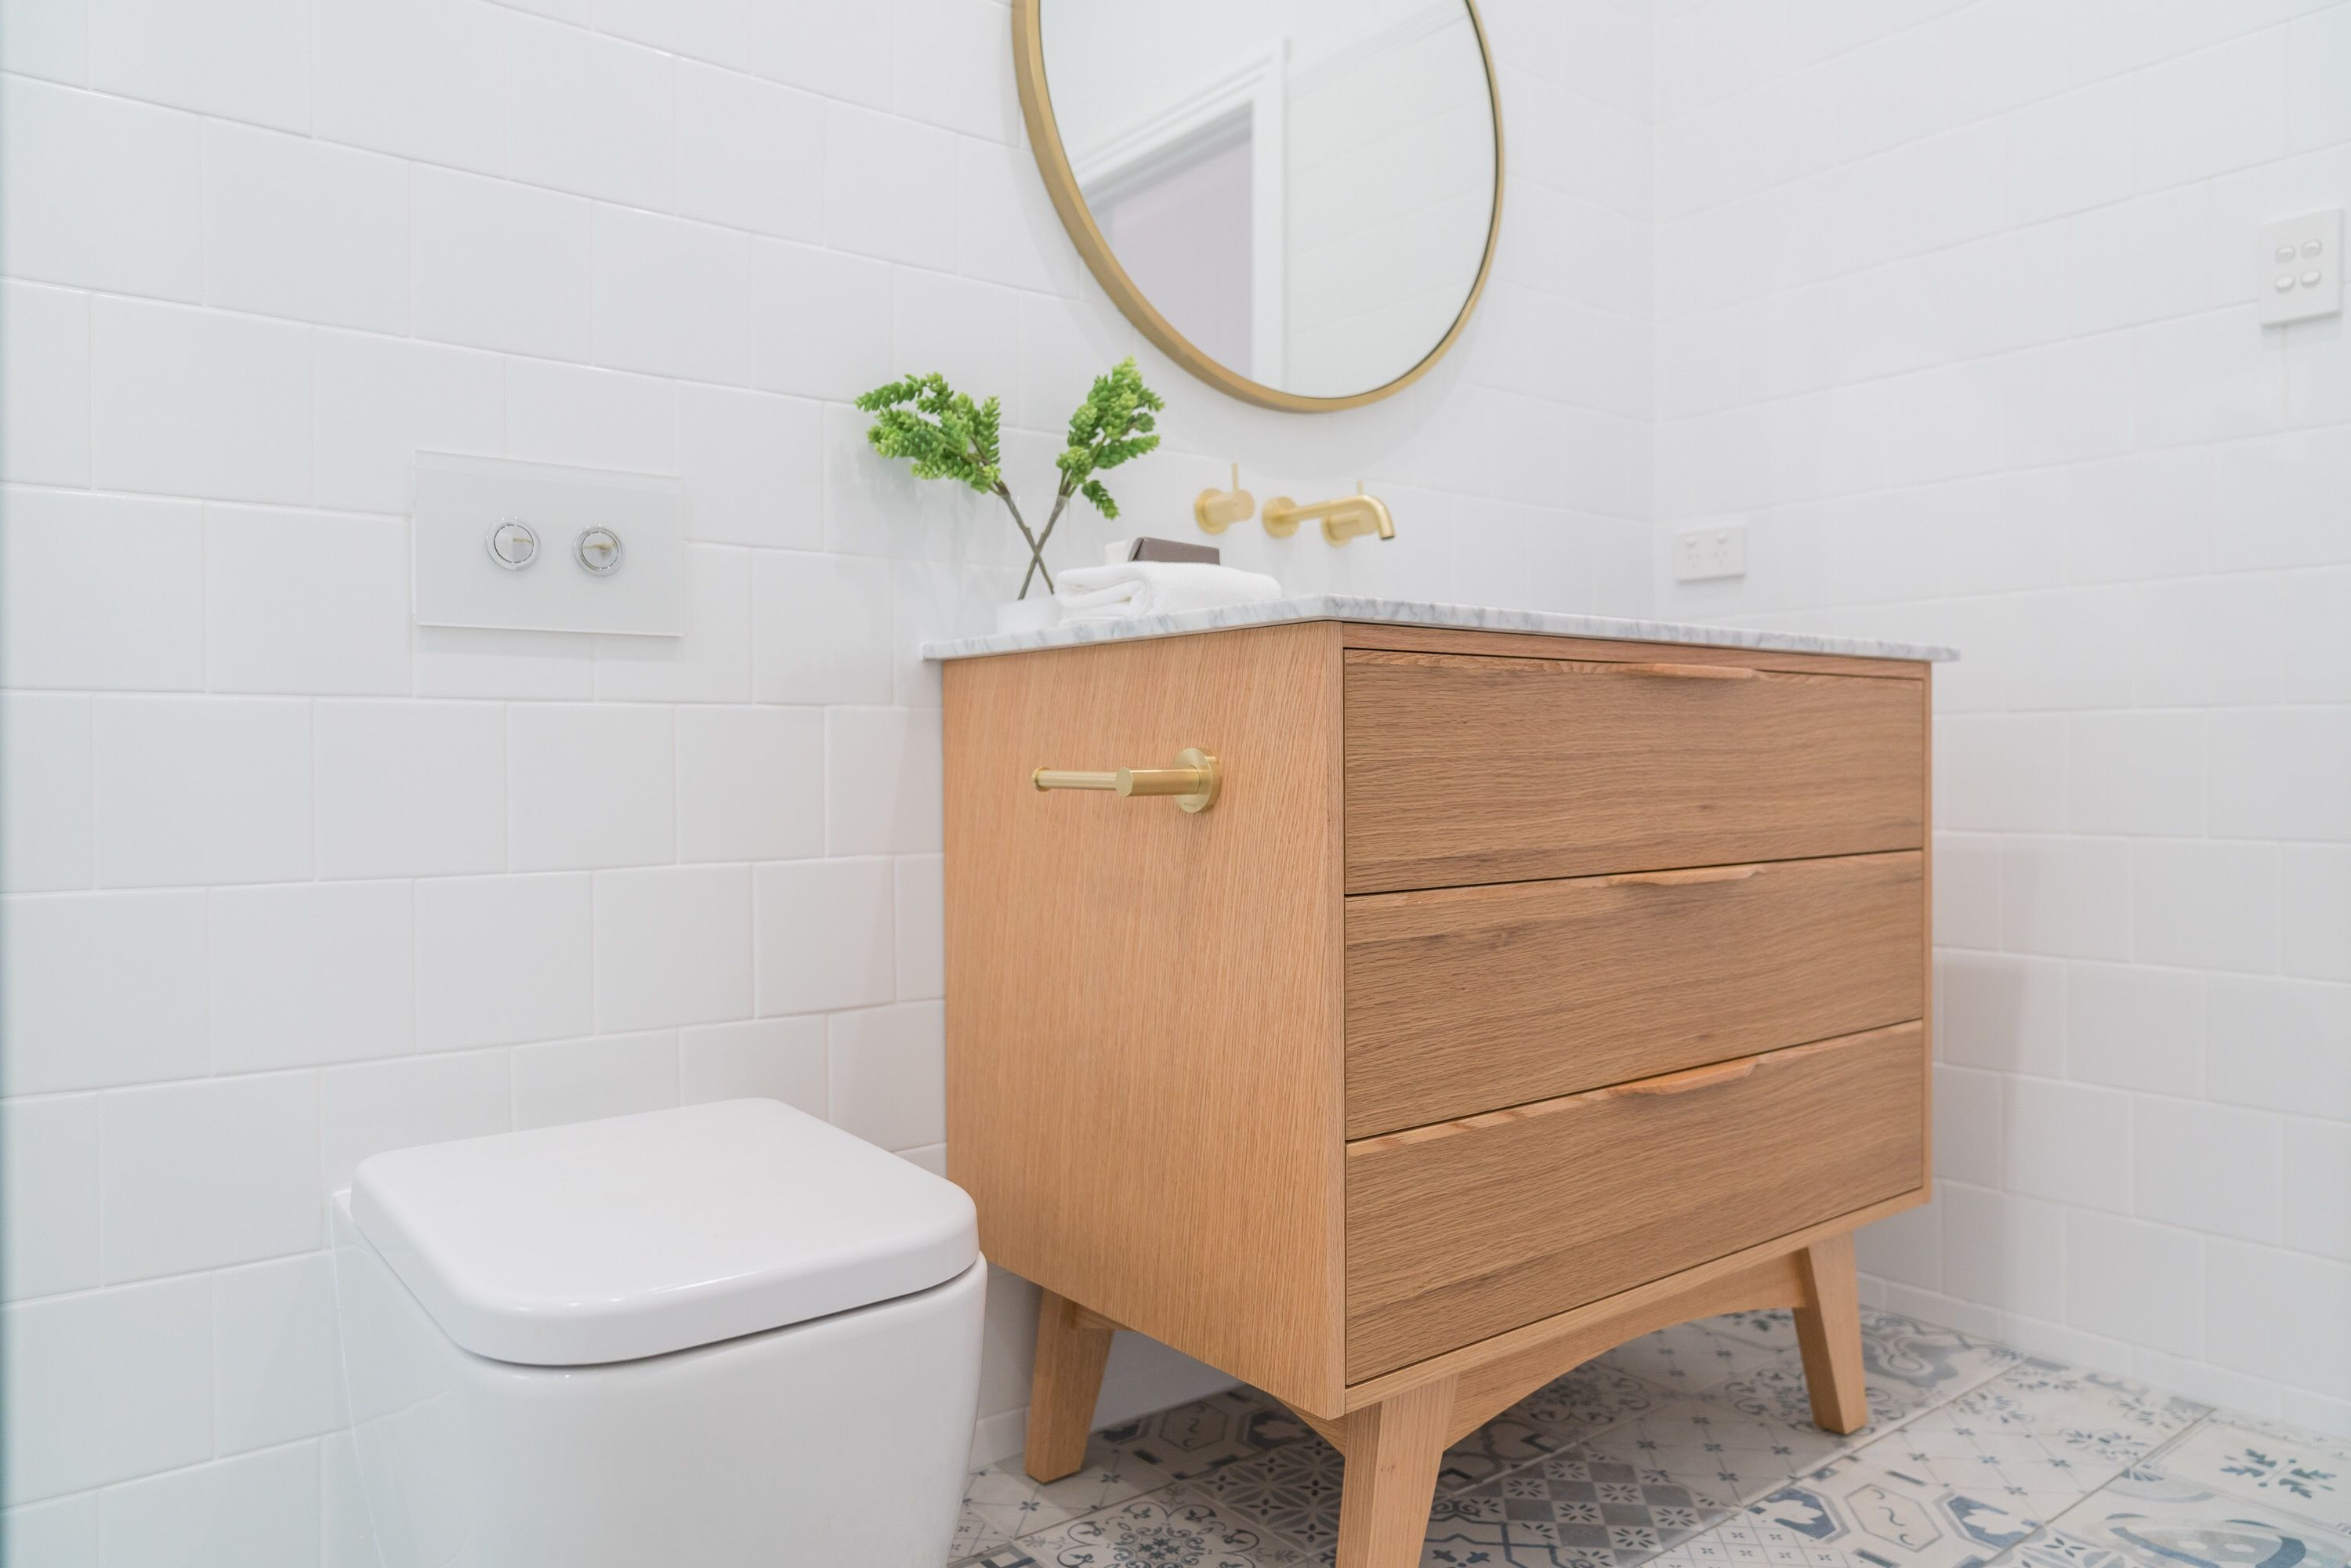 Minimalist S Bathroom With Simple Accents Ft The Alexander 36 Inch Bathroom Vanity In Natural Wo Small Bathroom Vanities Modern Master Bathroom Small Bathroom [ 2001 x 3000 Pixel ]